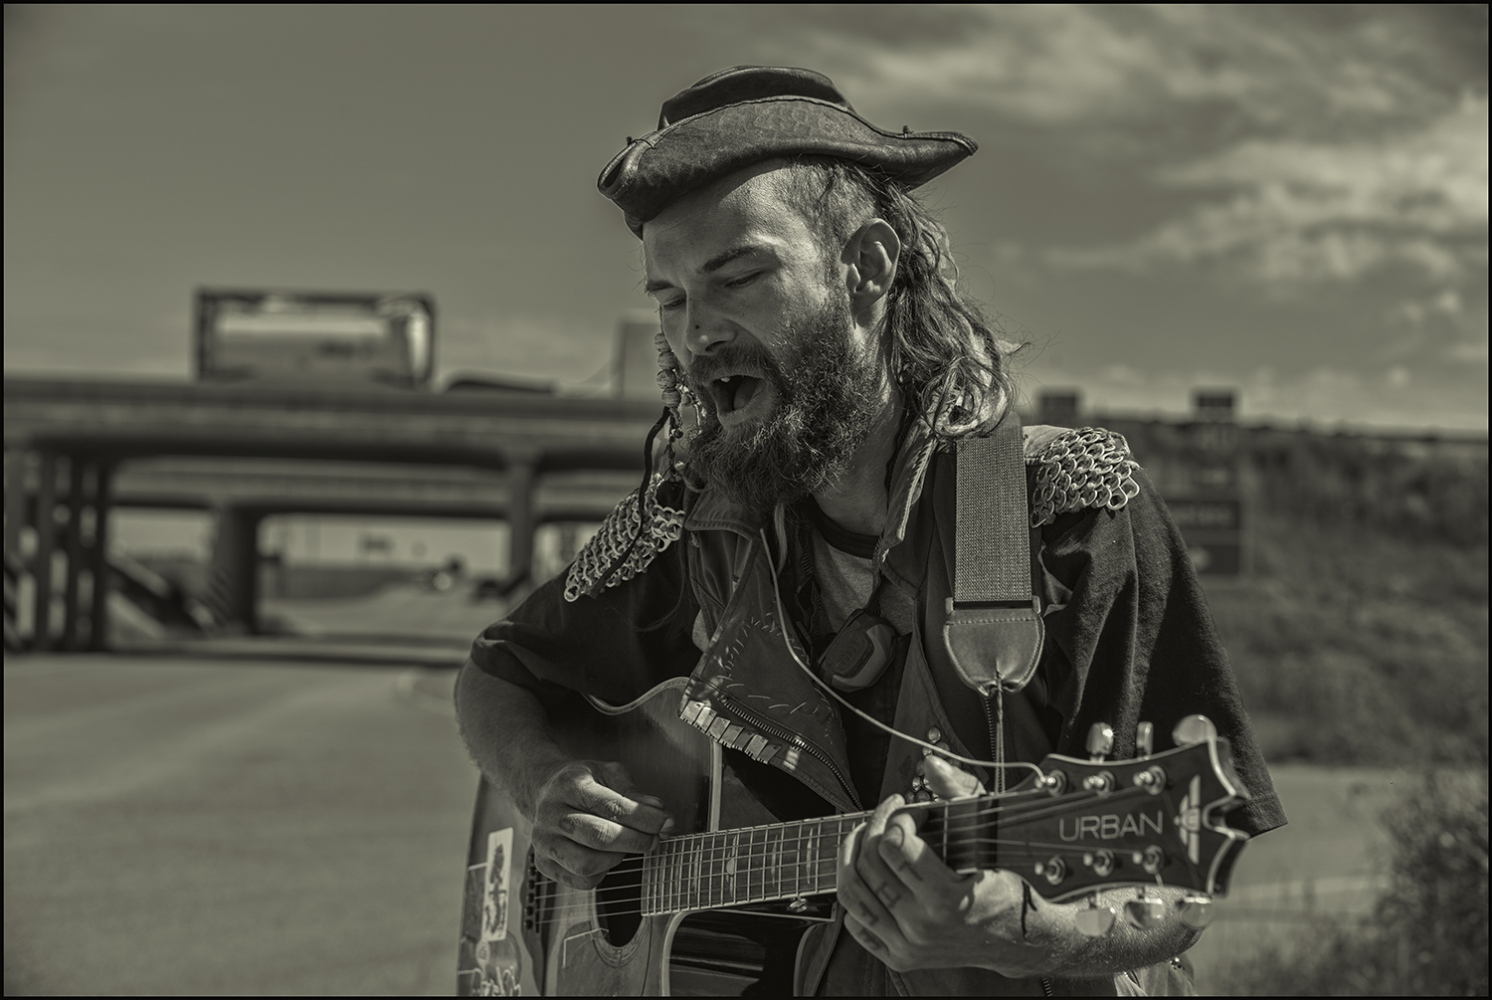 """Wolfie Wingnut"" singing for donations to purchase gas. Wingnut took up position at Exit 123 I40E on ramp in Seligman, Arizona USA. September, 2018."